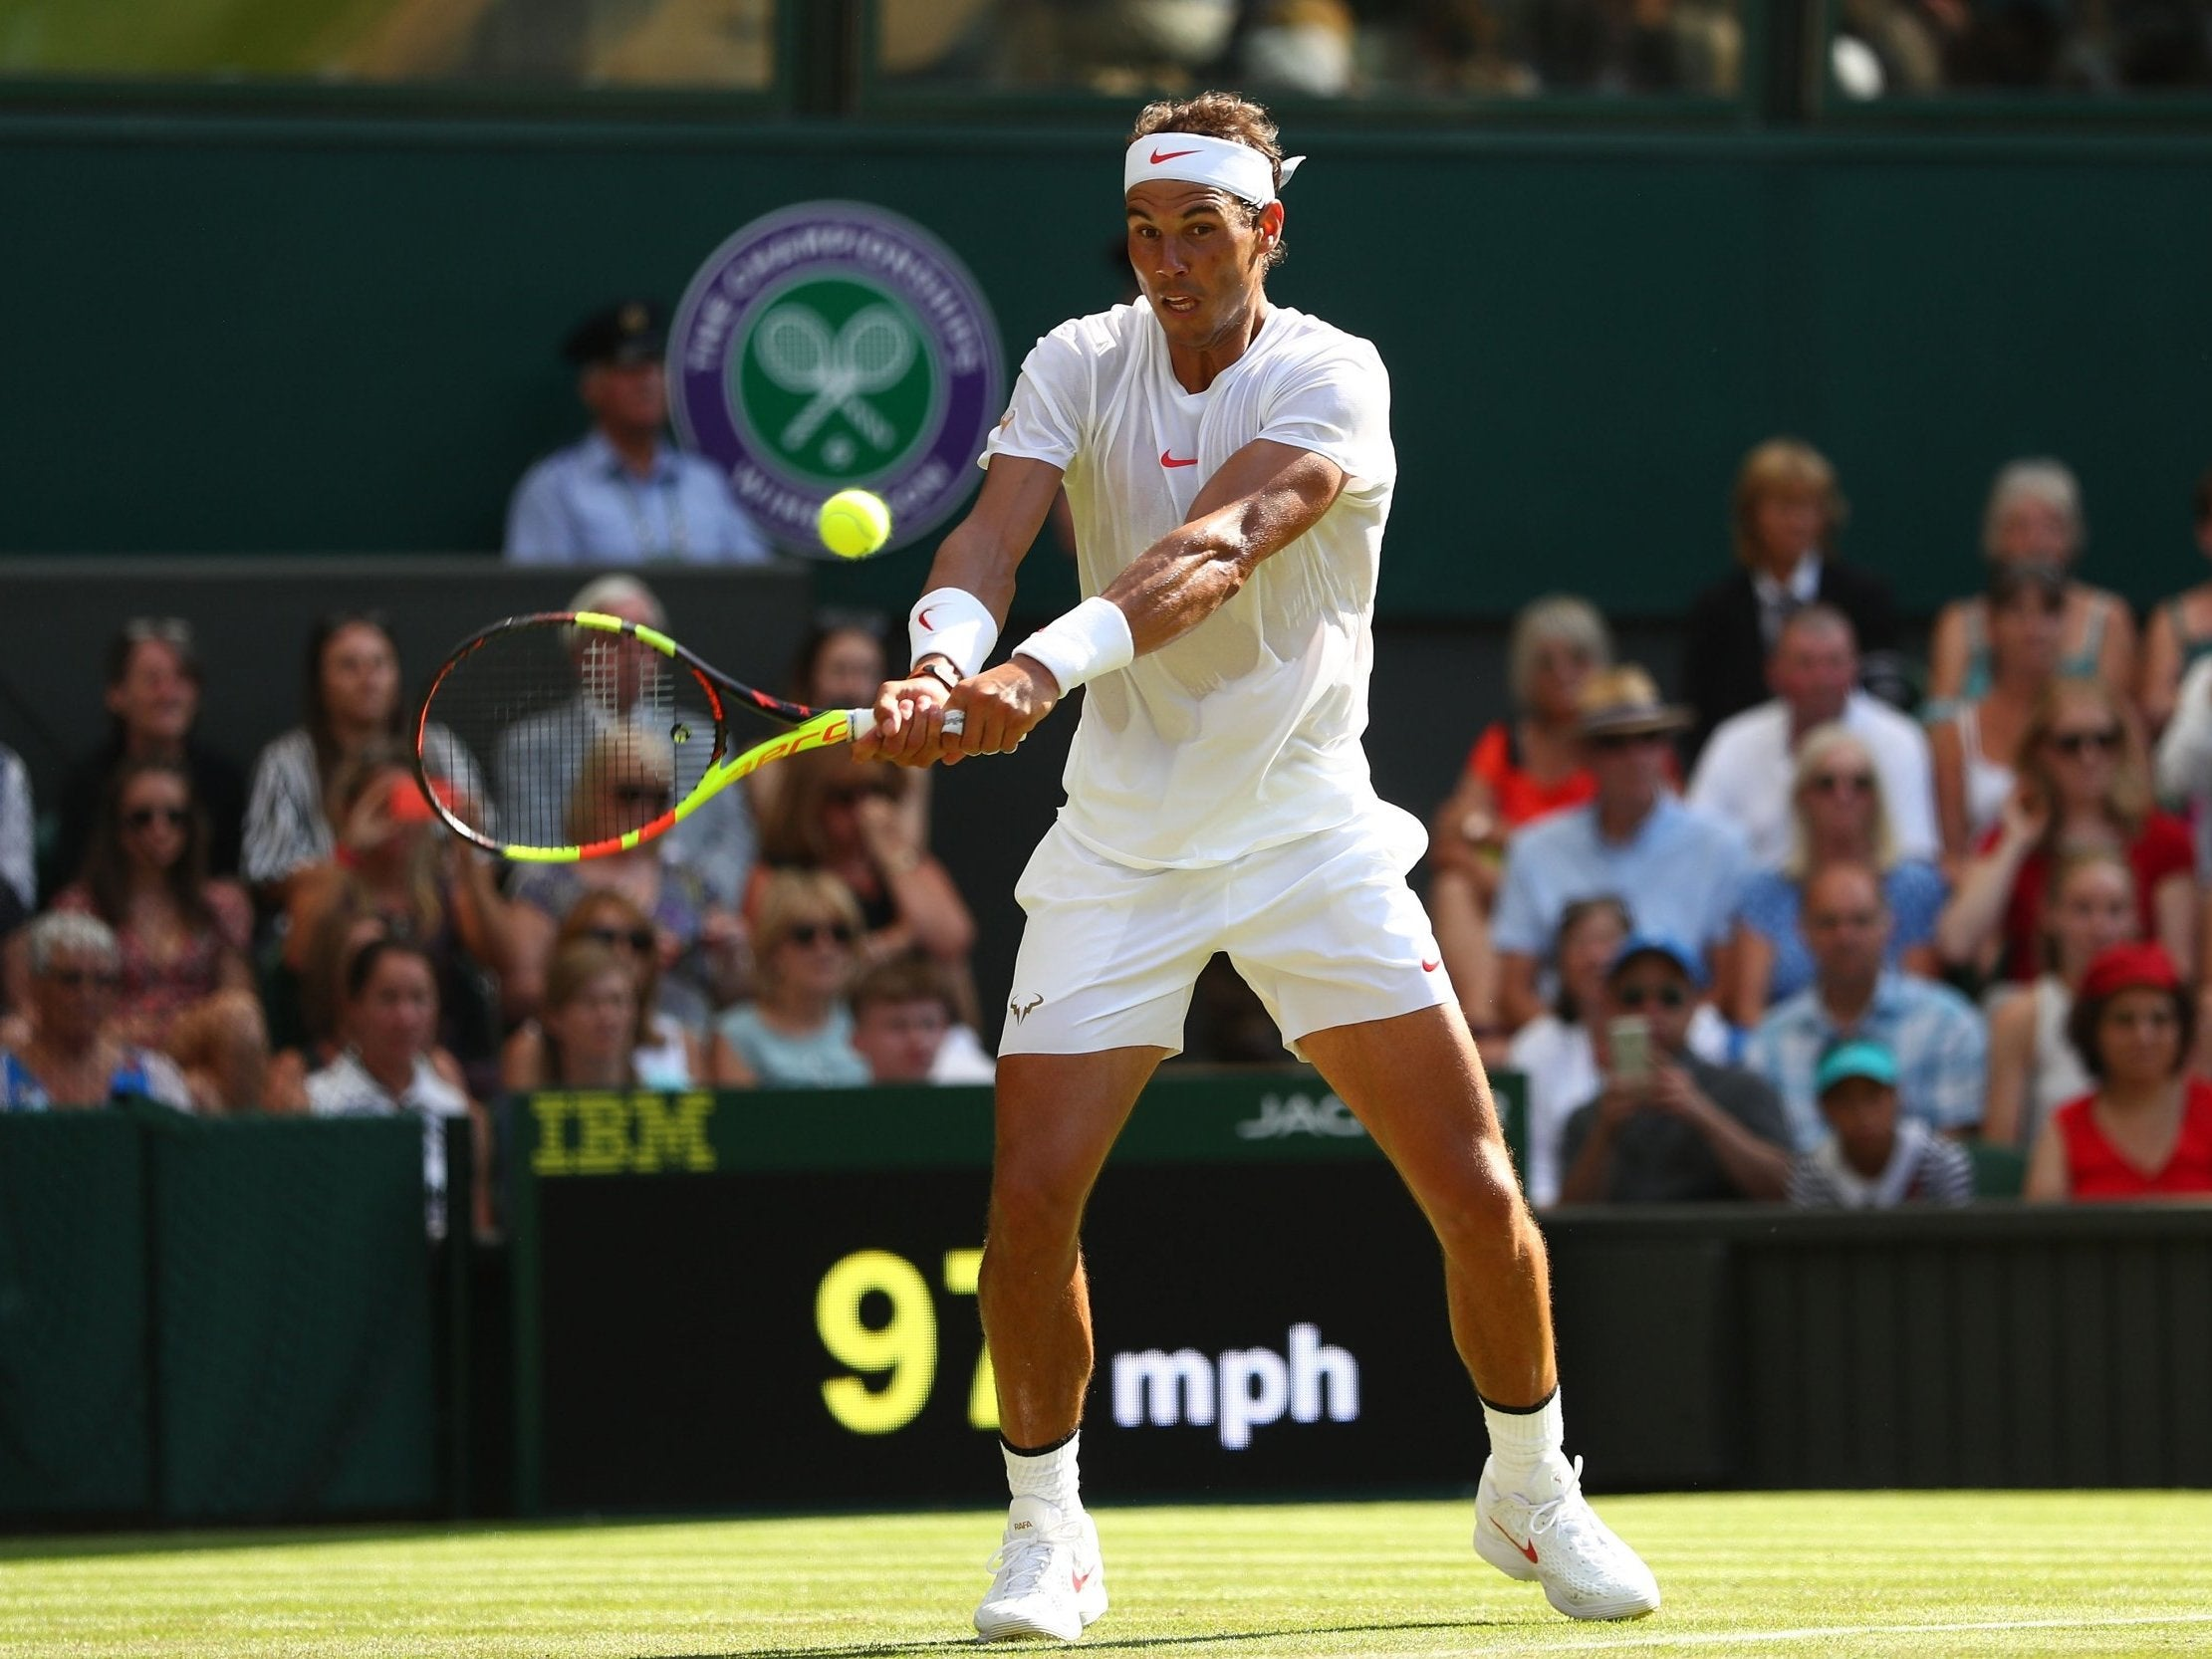 Wimbledon 2018 Rafael Nadal Brings Own Inimitable Style To Grass Court Season And Will Rival Roger Federer The Independent The Independent